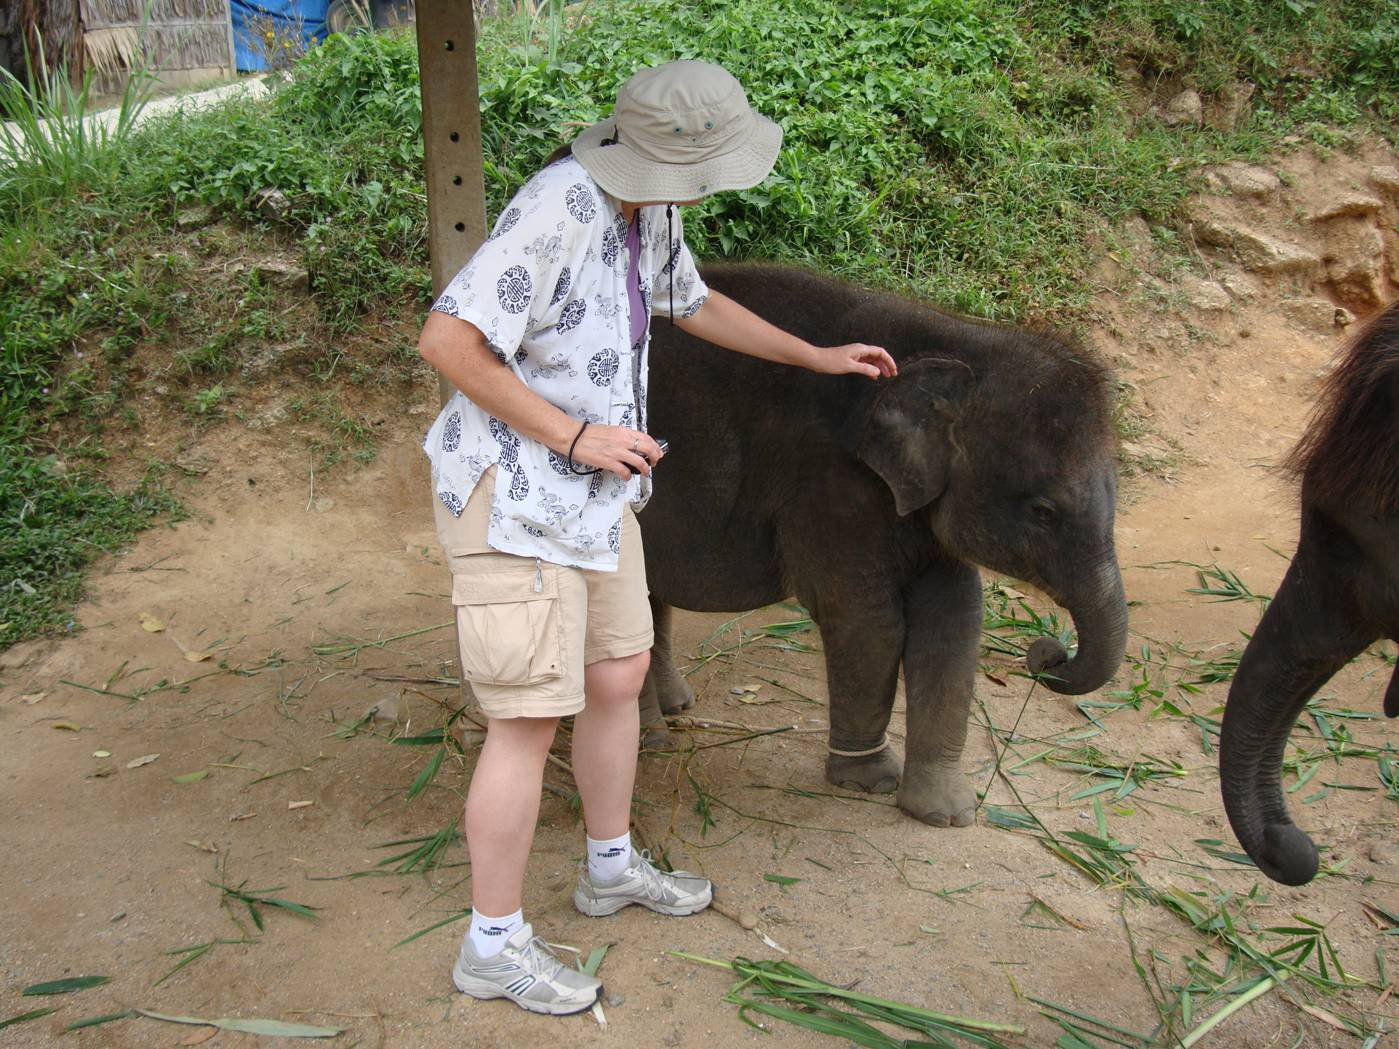 Picture:  Ruth approaches the baby elephant, Phuket Island, Thailand